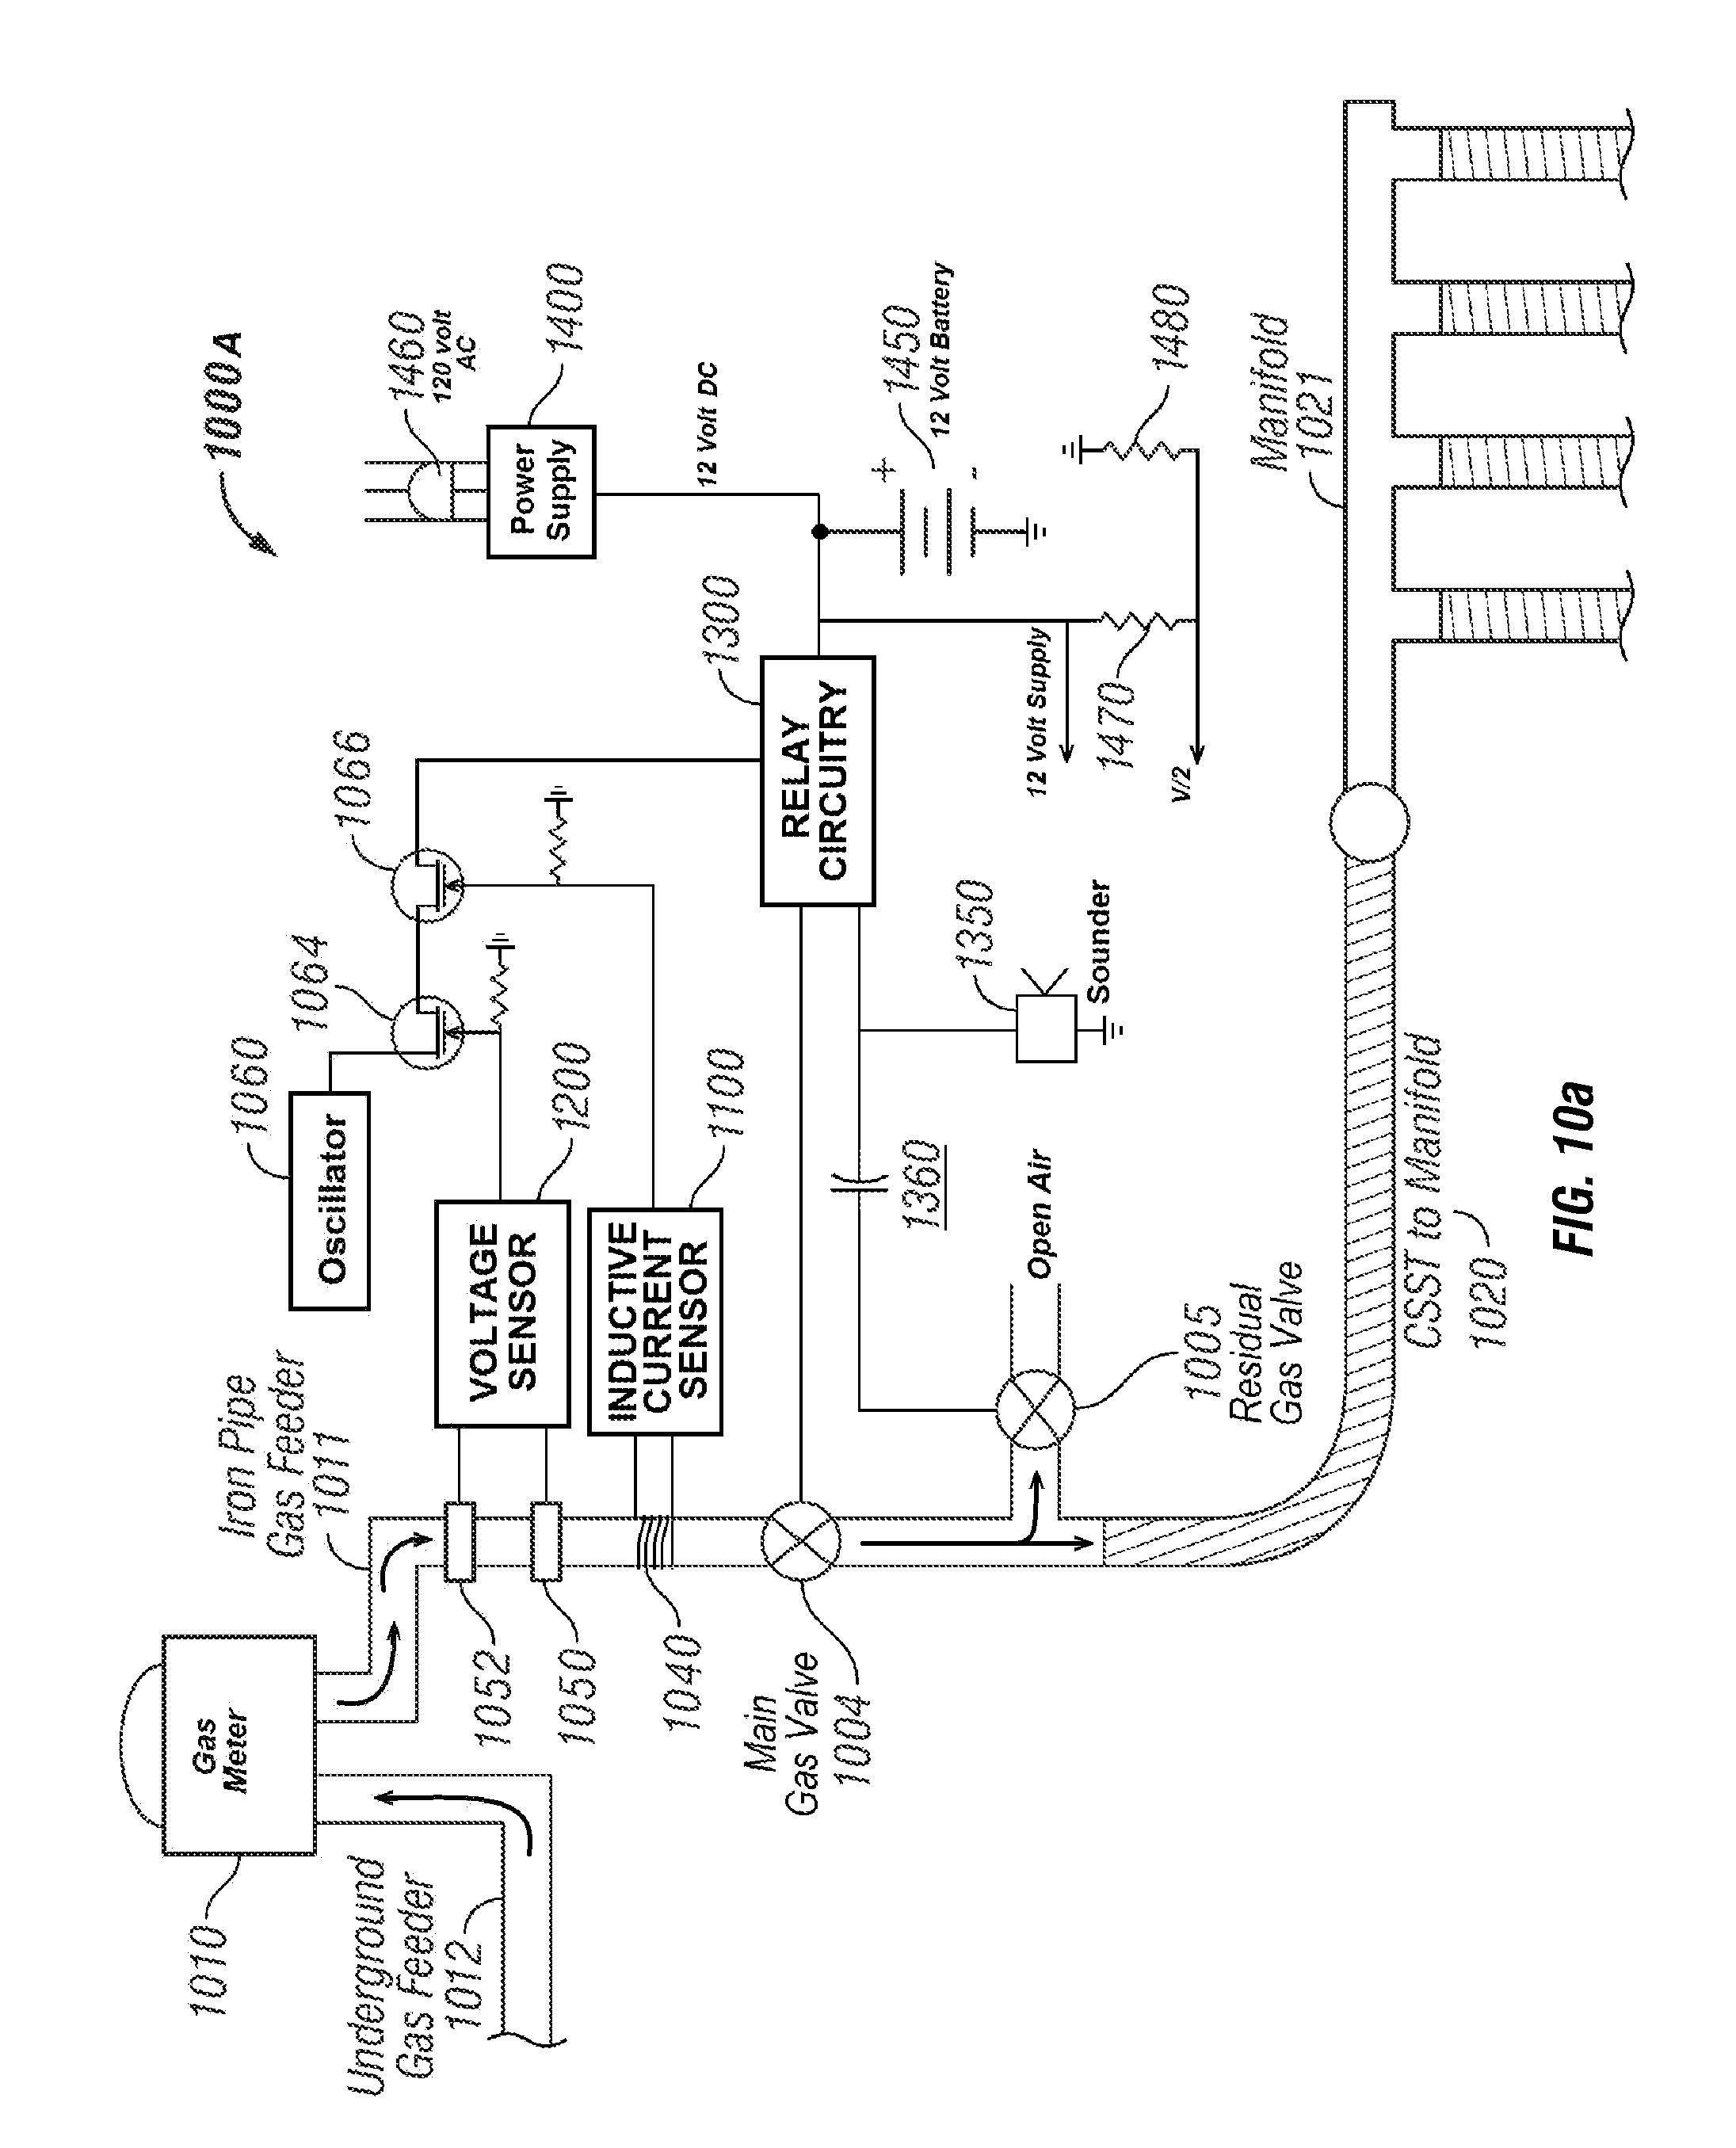 Wiring Diagram Additionally Atwood Rv Hot Water Heater Wiring Diagram